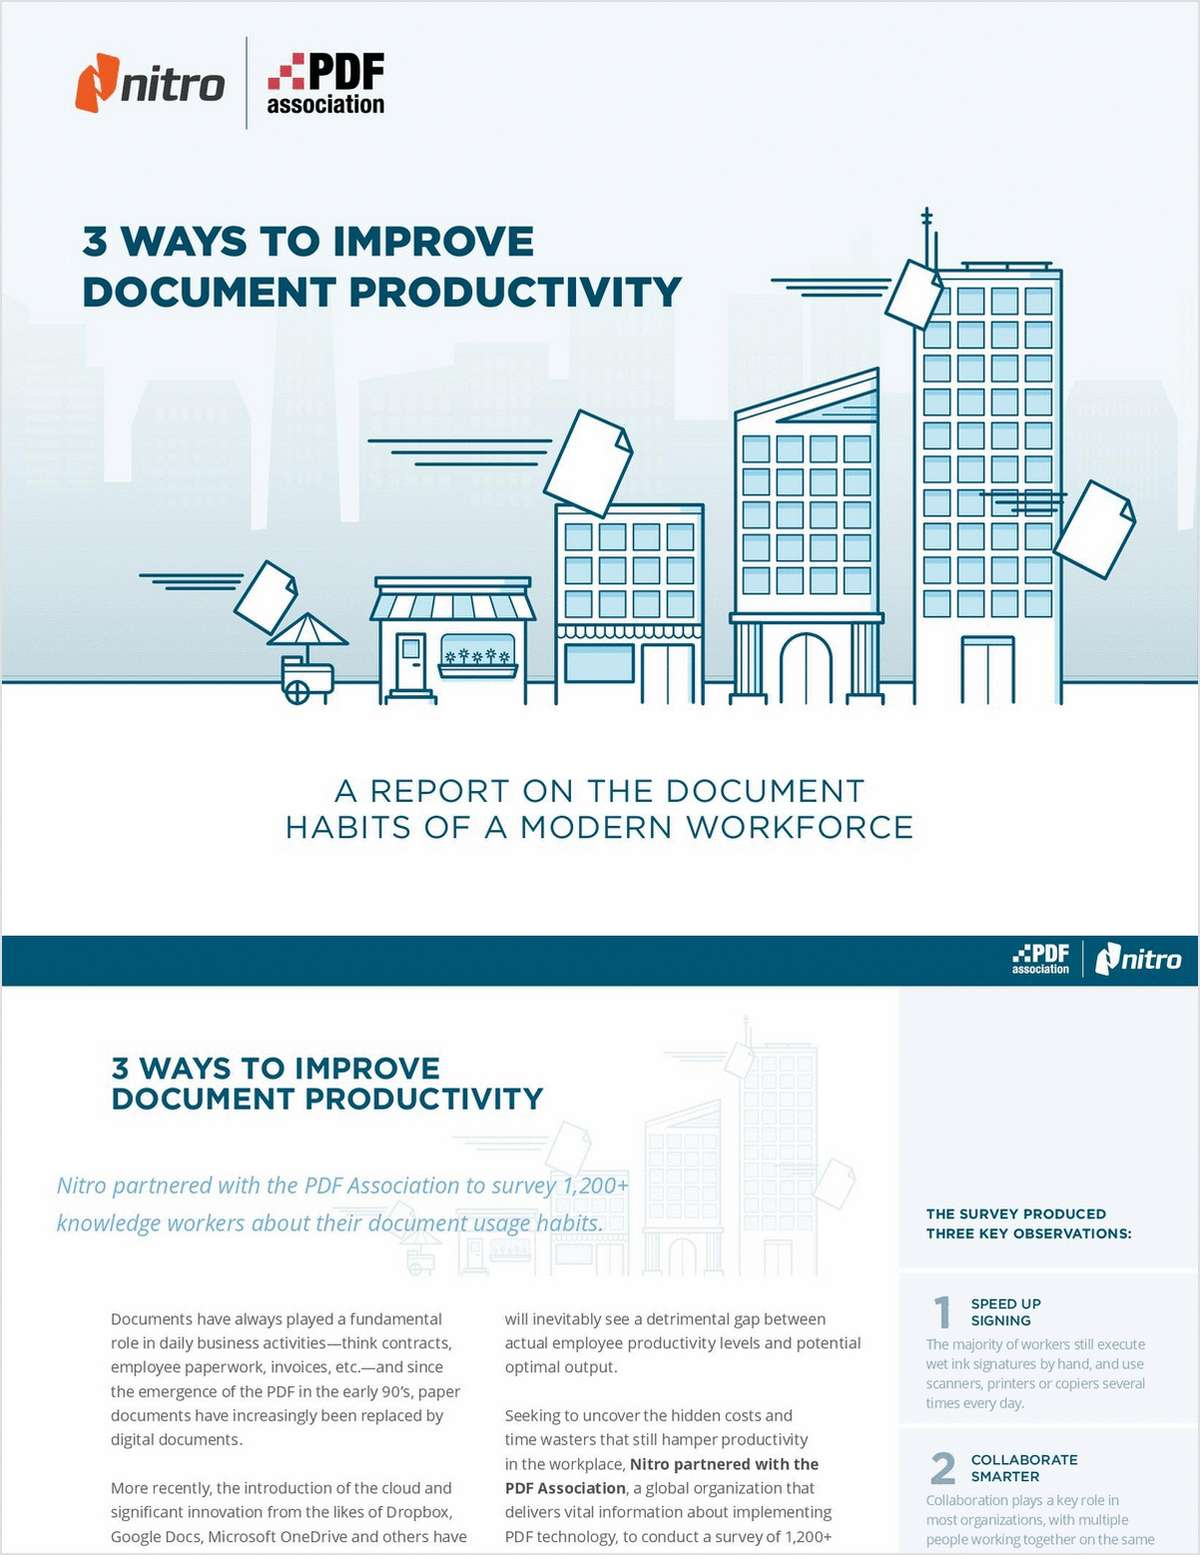 3 Ways to Improve Document Productivity